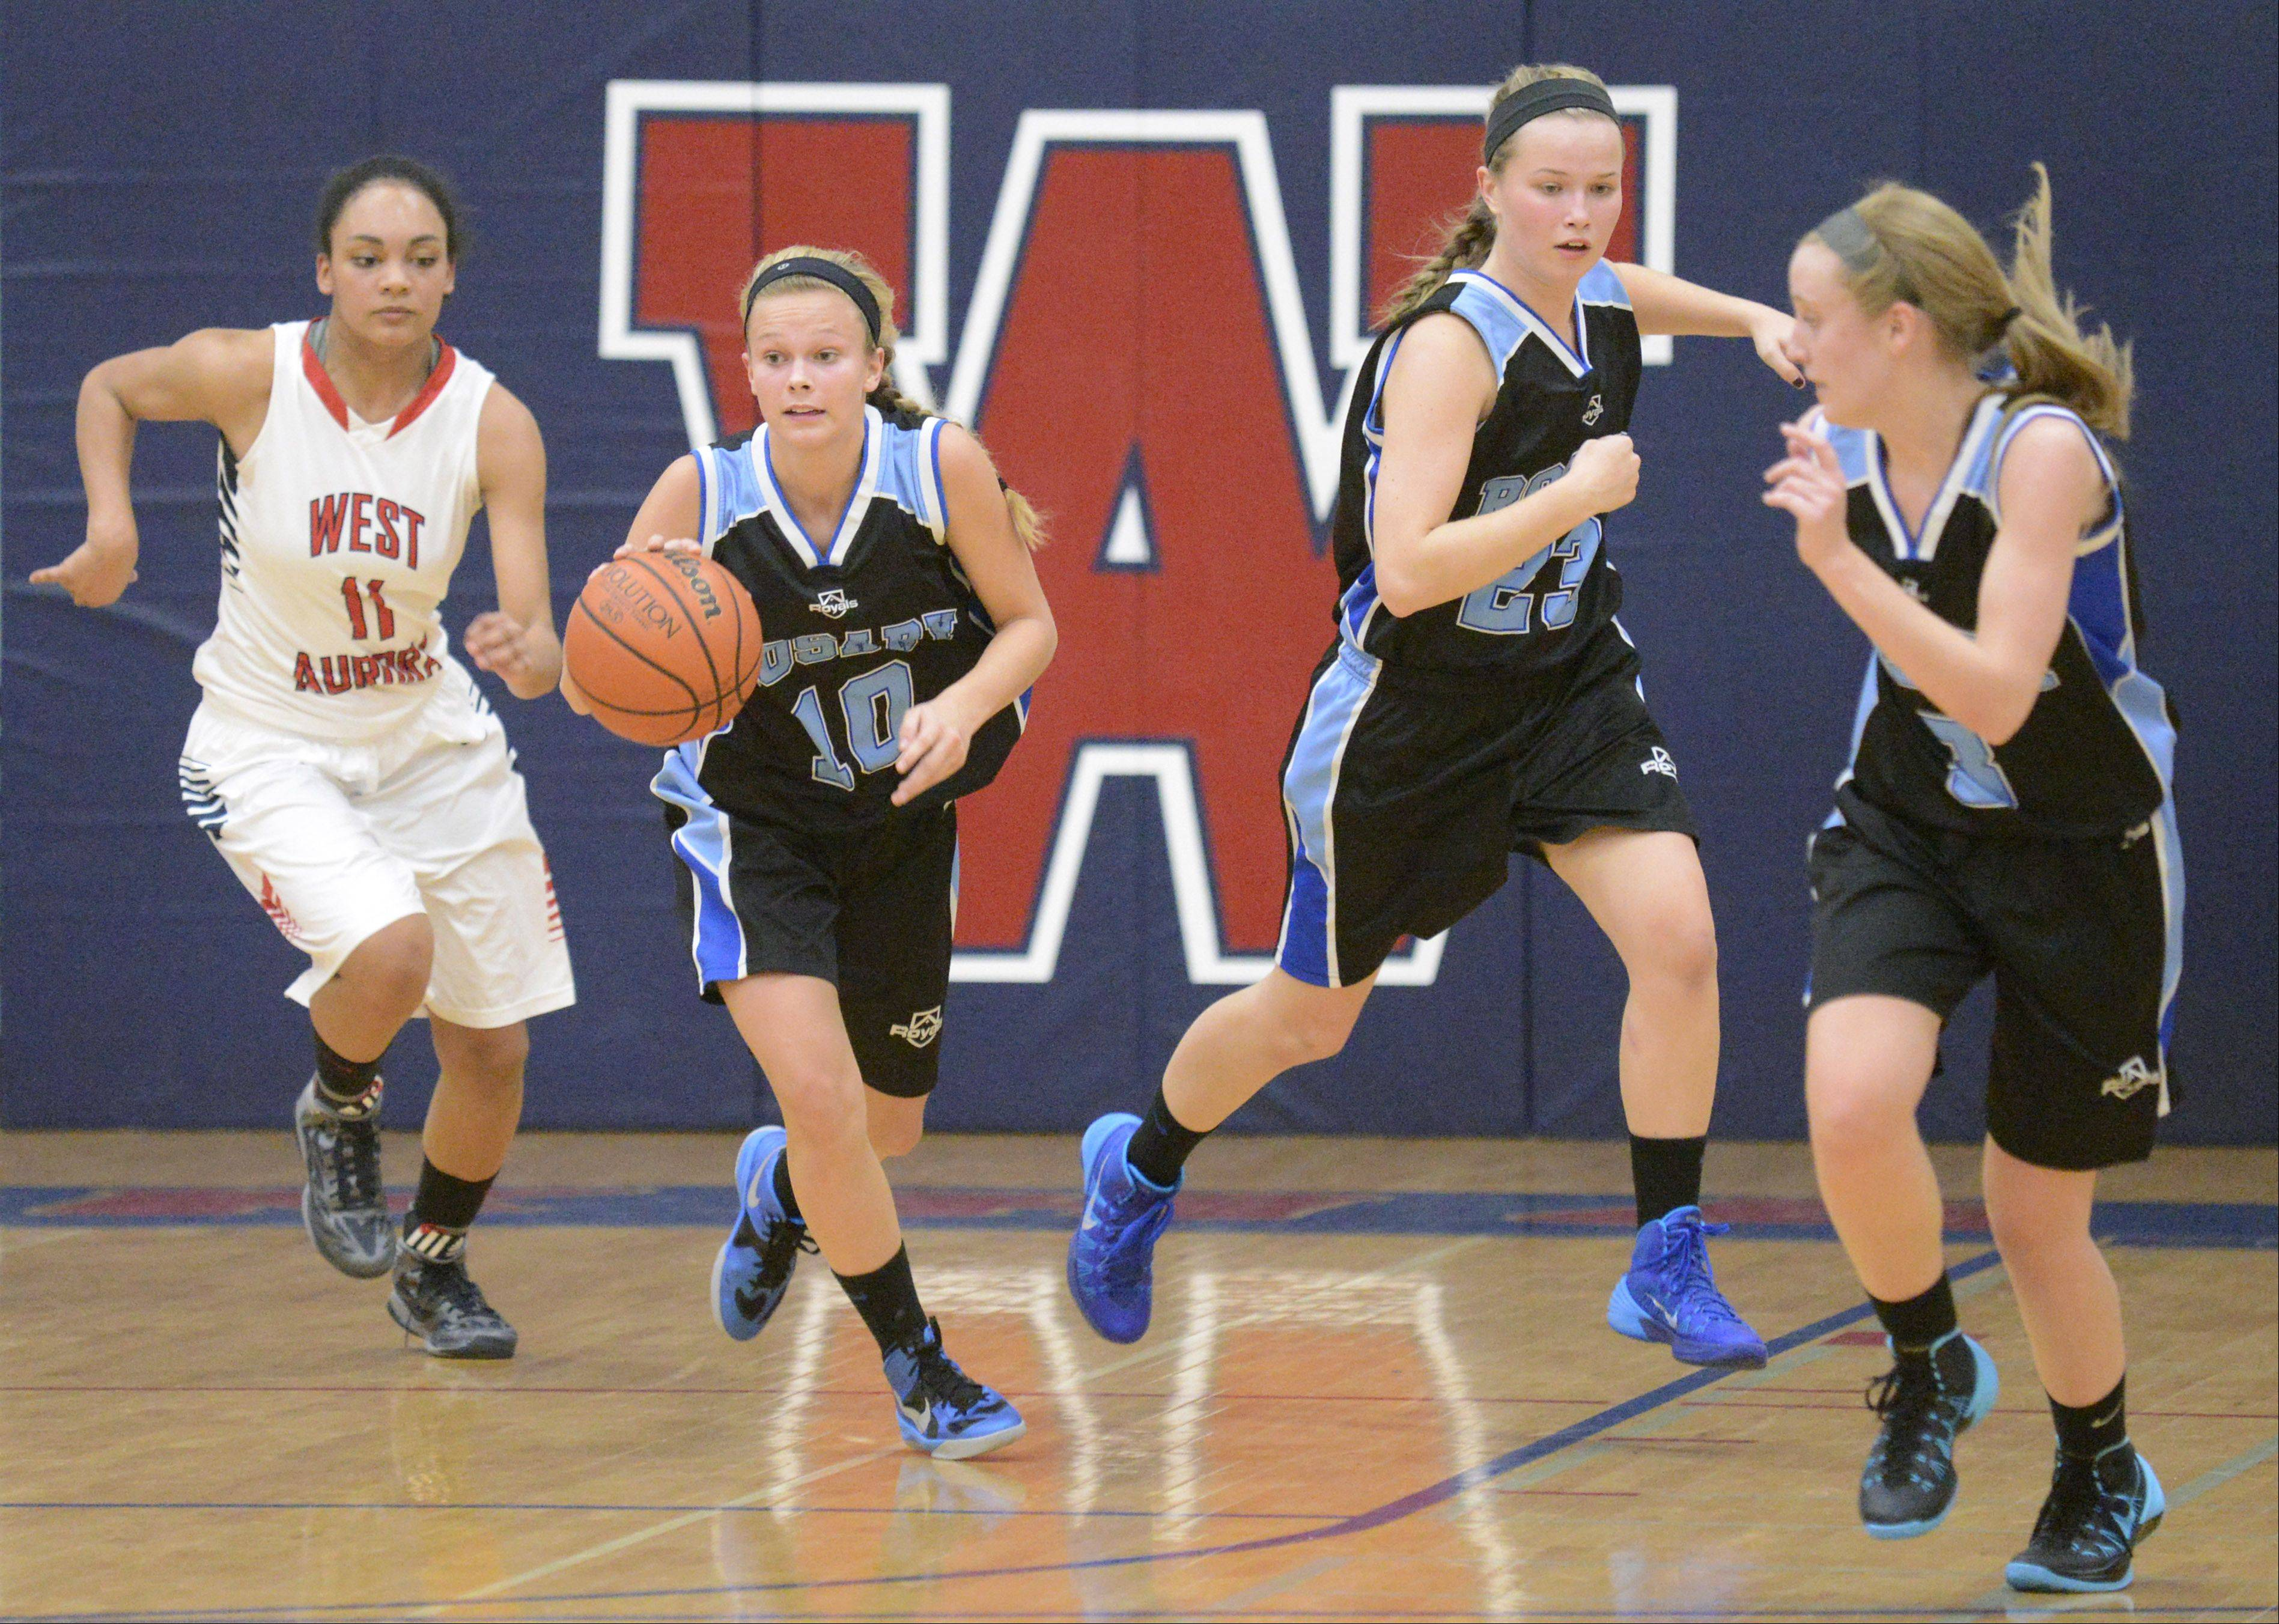 Images: Rosary vs. West Aurora girls basketball